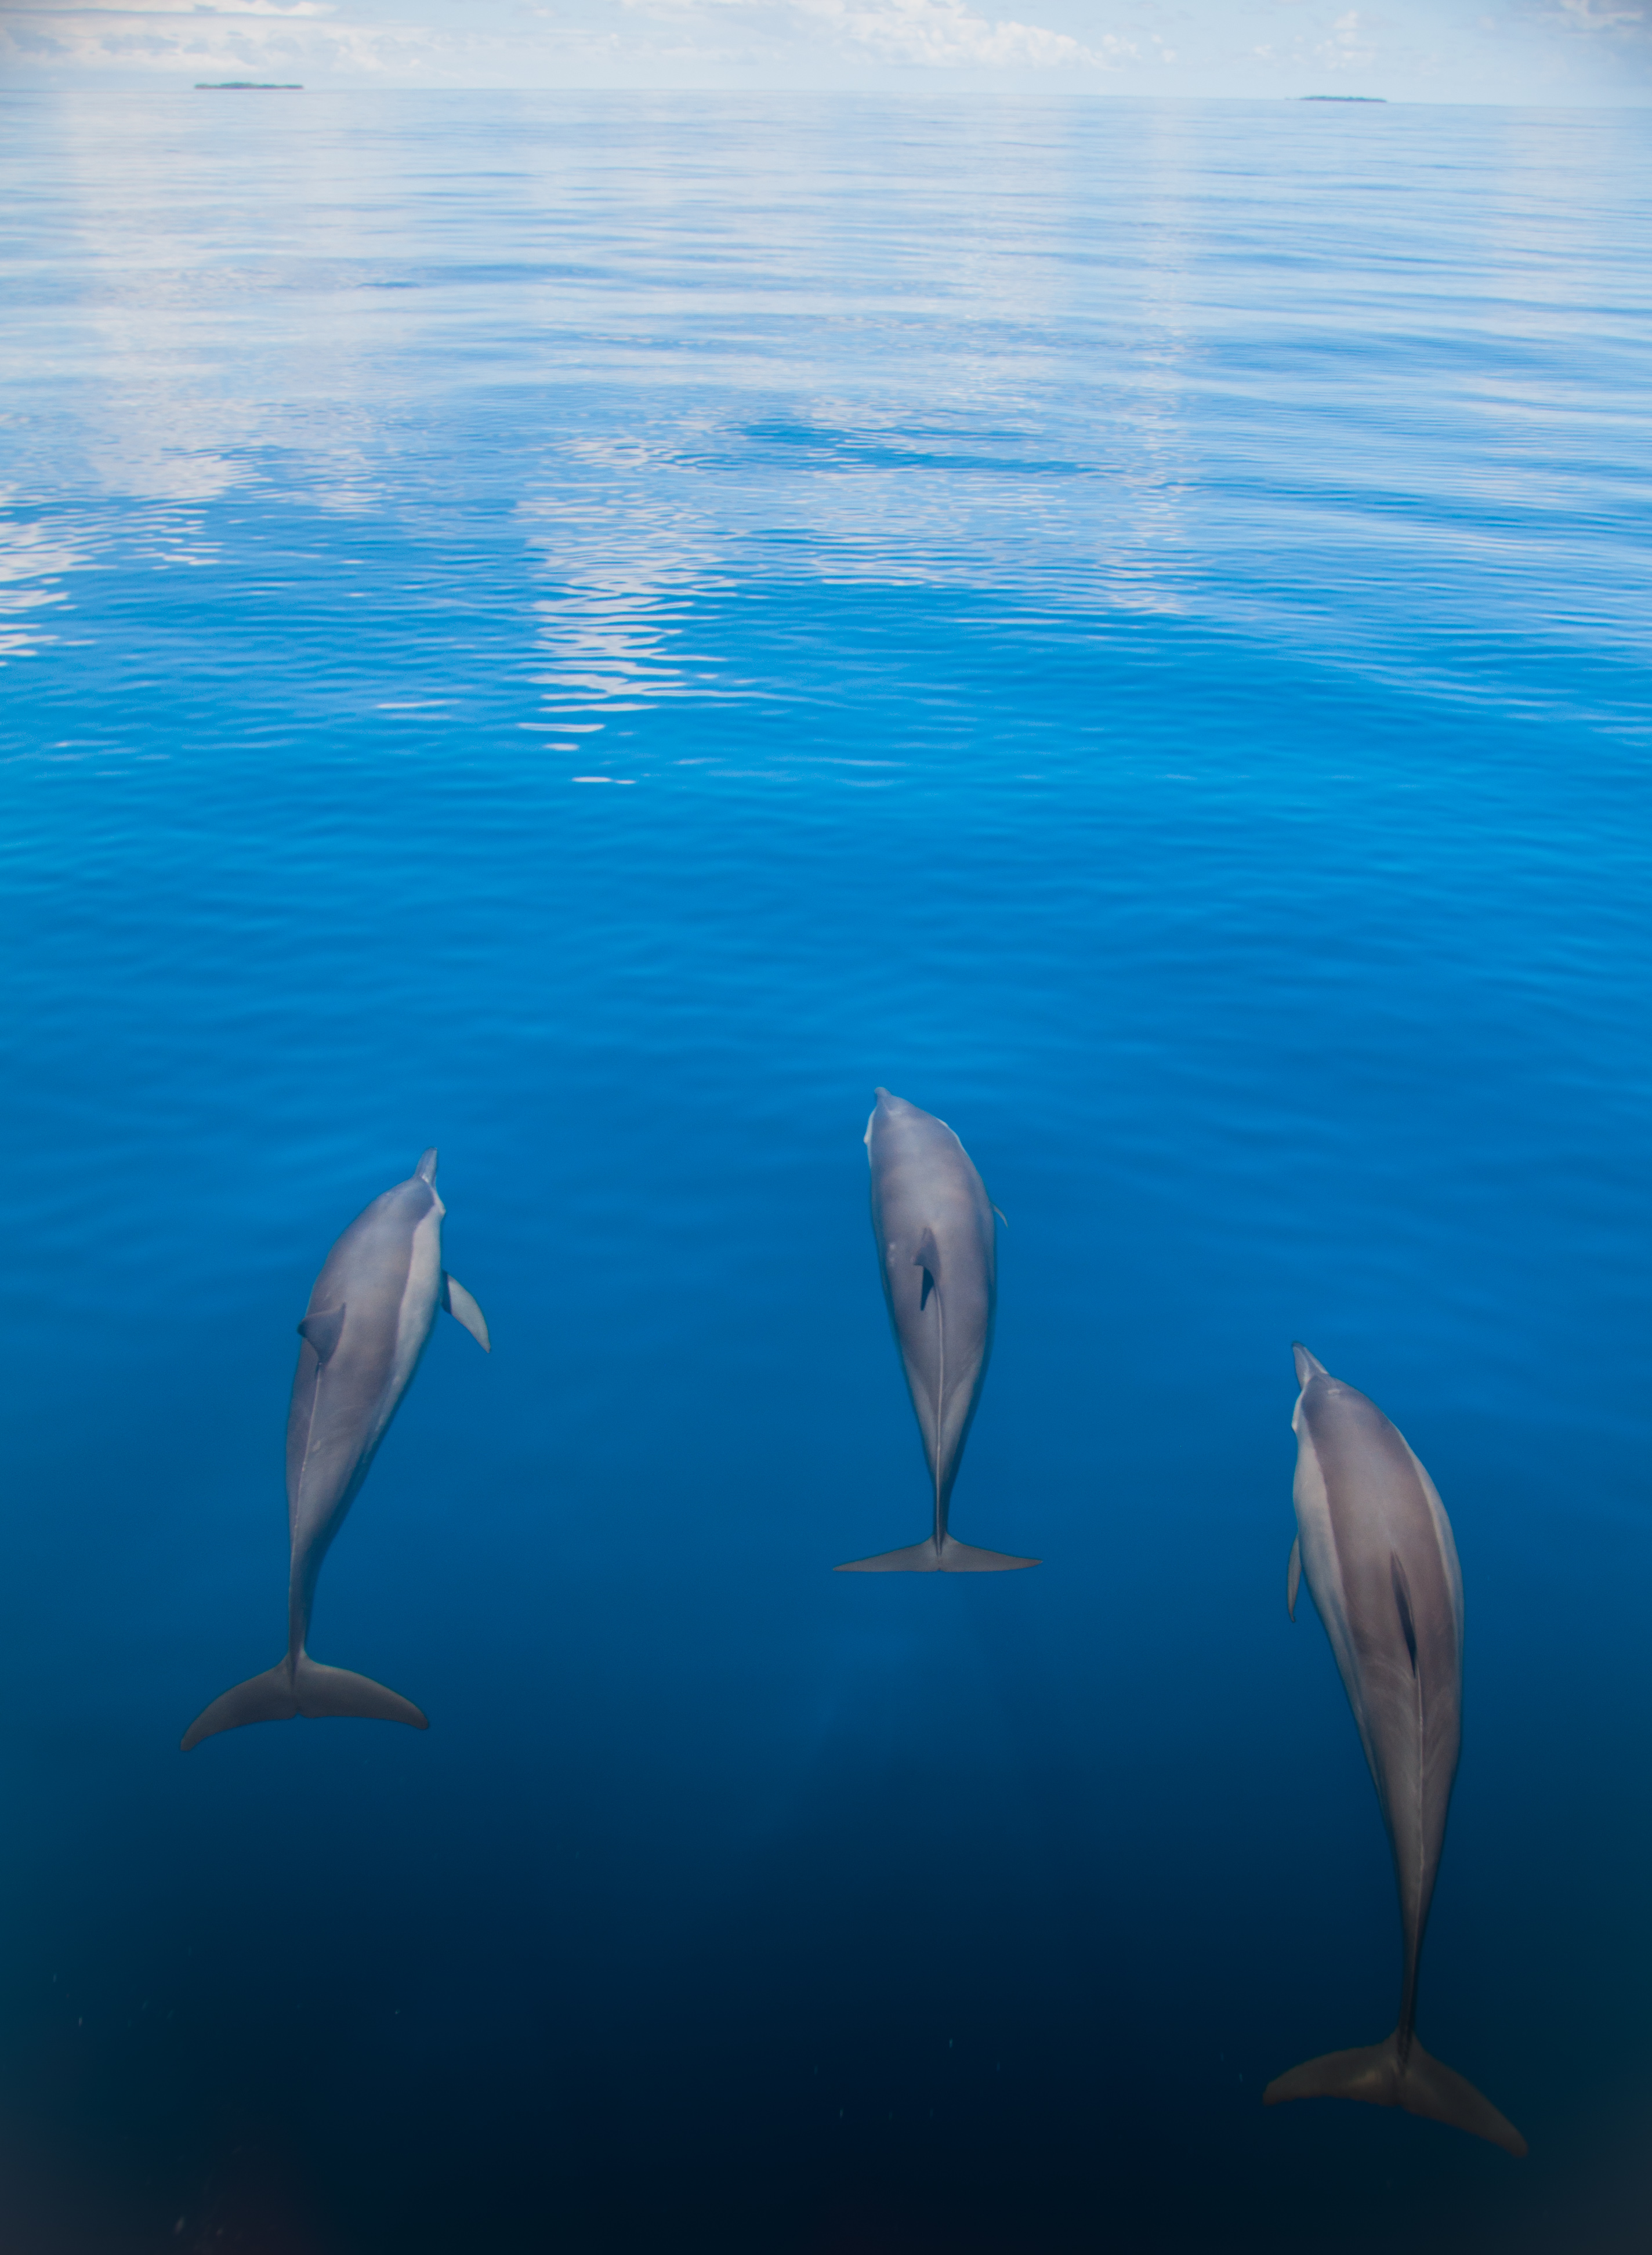 Dolphins ride the bough wave ahead of a research vessel at Chagos Marine Reserve.